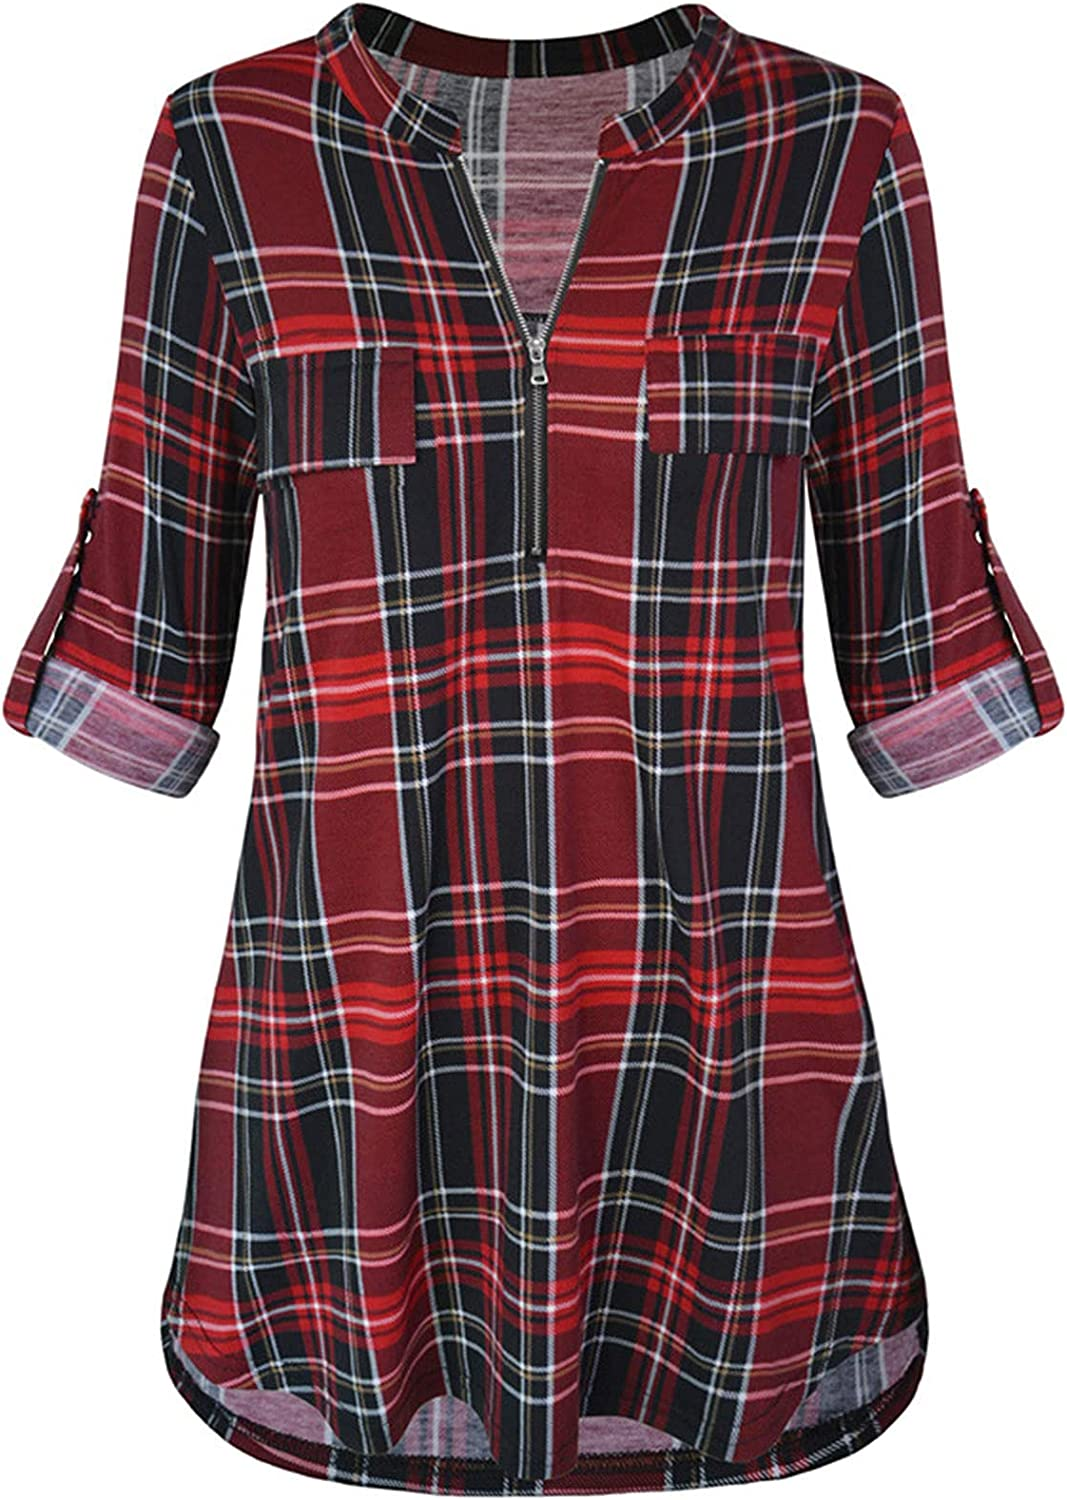 Women's Plaid 3/4 Sleeves Plaid Shirts Zip Roll up Sleeves Blouses Casual Work Loose Hem Tunic Blouse Tops